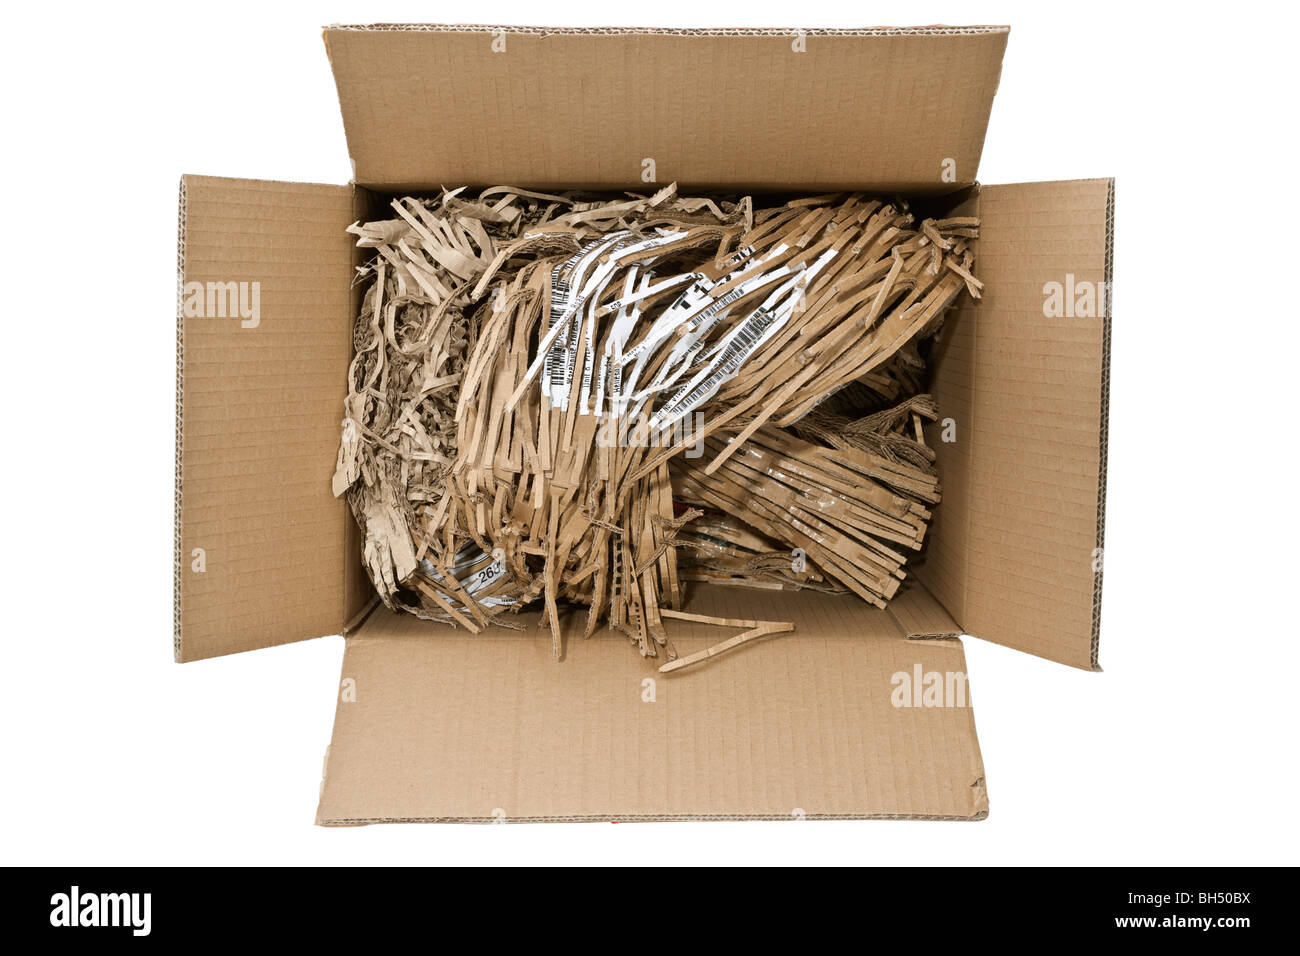 Looking down inside a cardboard box full of shredded cardboard recycled packing material - Stock Image